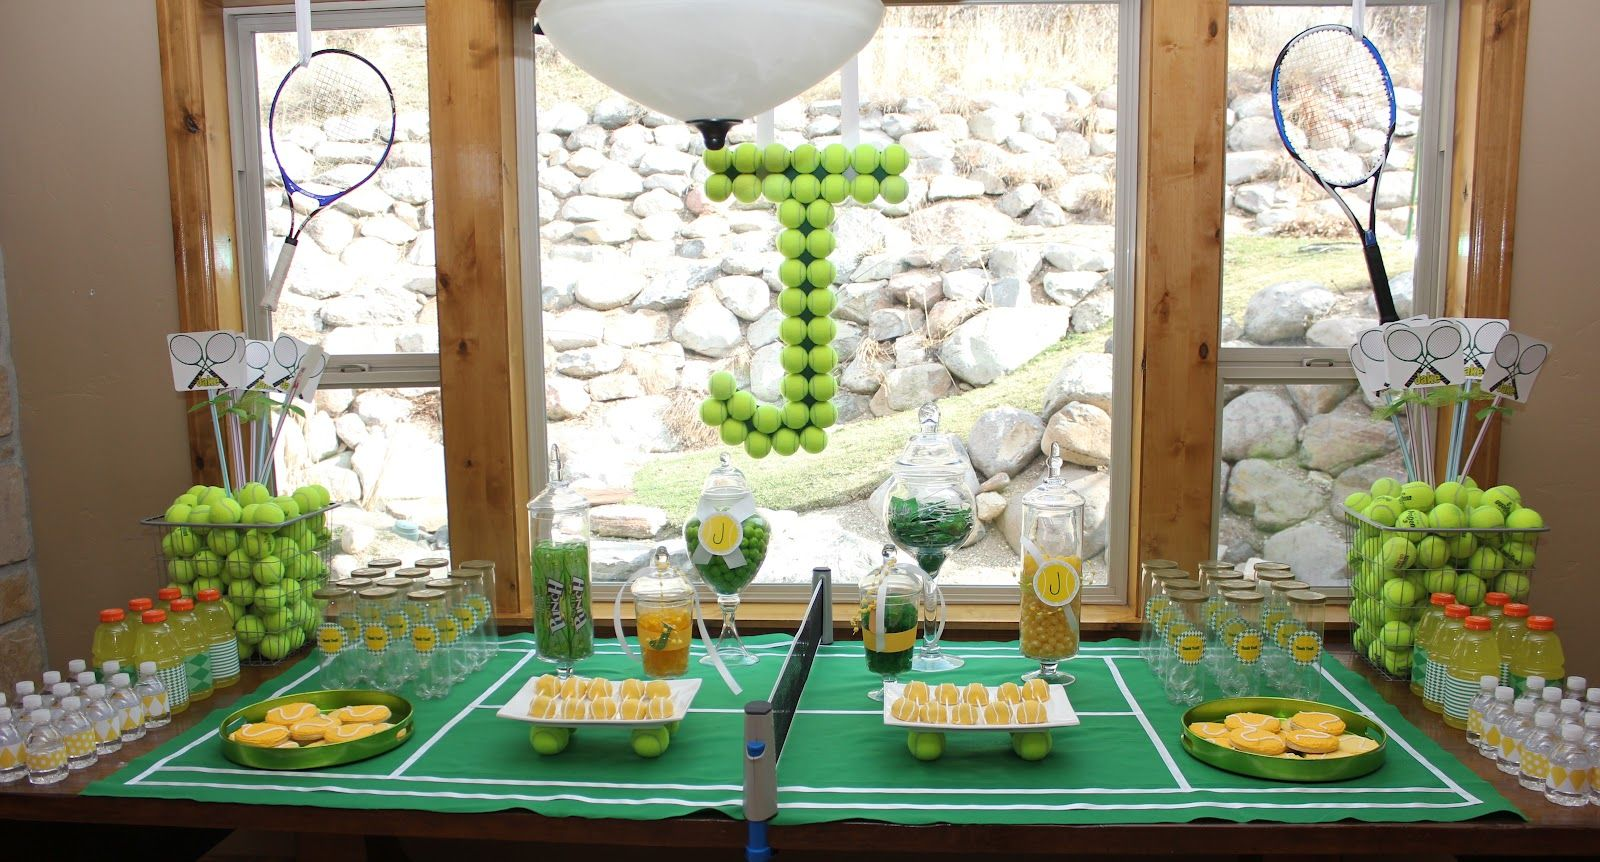 Tennis Party, Bar Mitzvah, Event Ideas, Banquet Ideas, Tennis Decorations,  Party Decoration Ideas, Centerpiece Ideas, Parties Decorations, Centerpieces